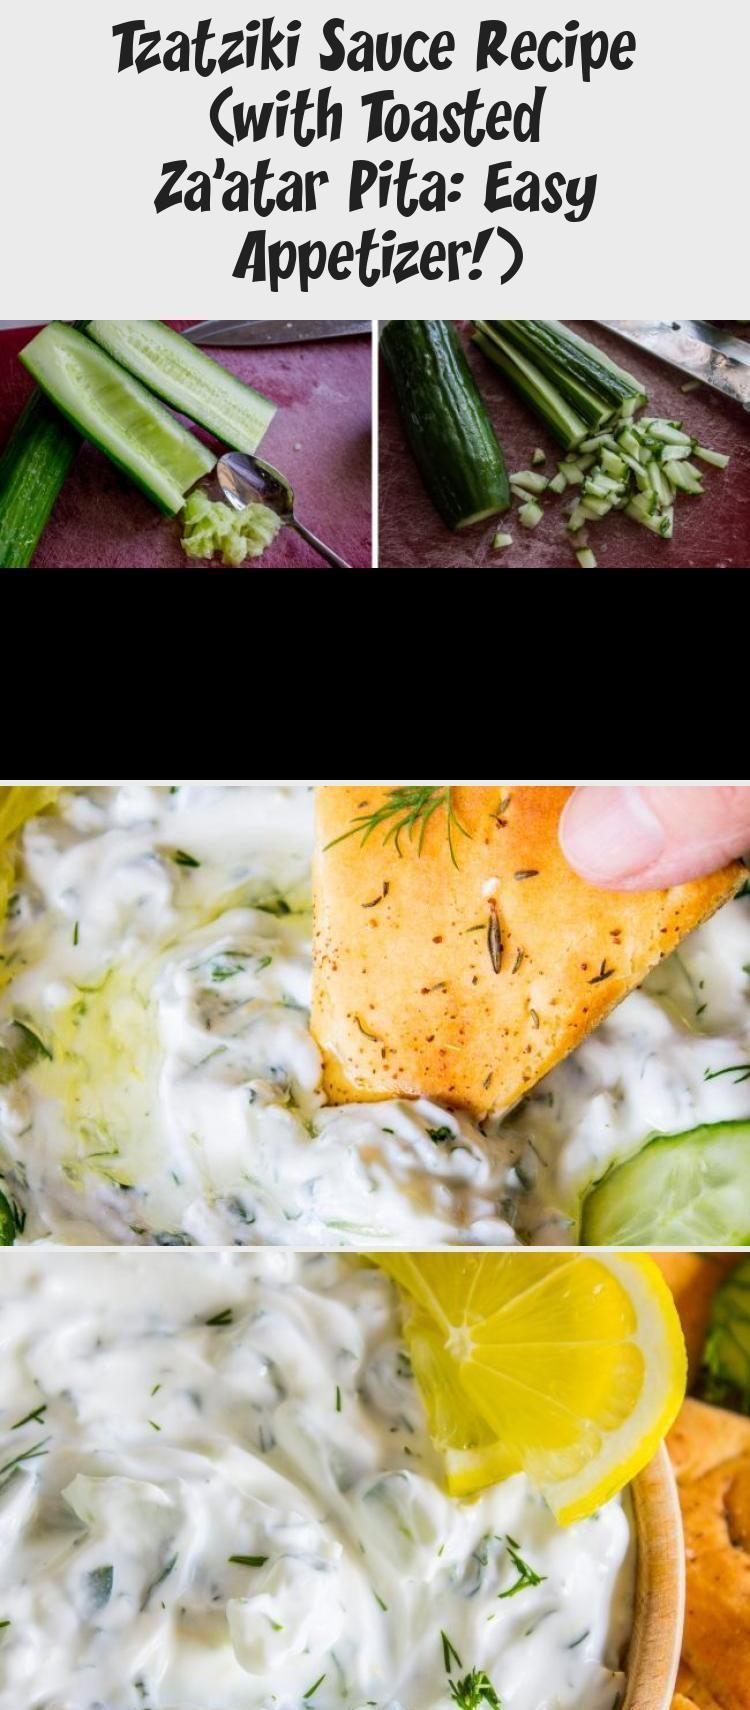 Tzatziki Sauce Easy No Cucumber Tzatziki Sauce Easy In 2020 Tzatziki Sauce Recipe Tzatziki Sauce Tzatziki Sauce Recipe Greek Yogurt